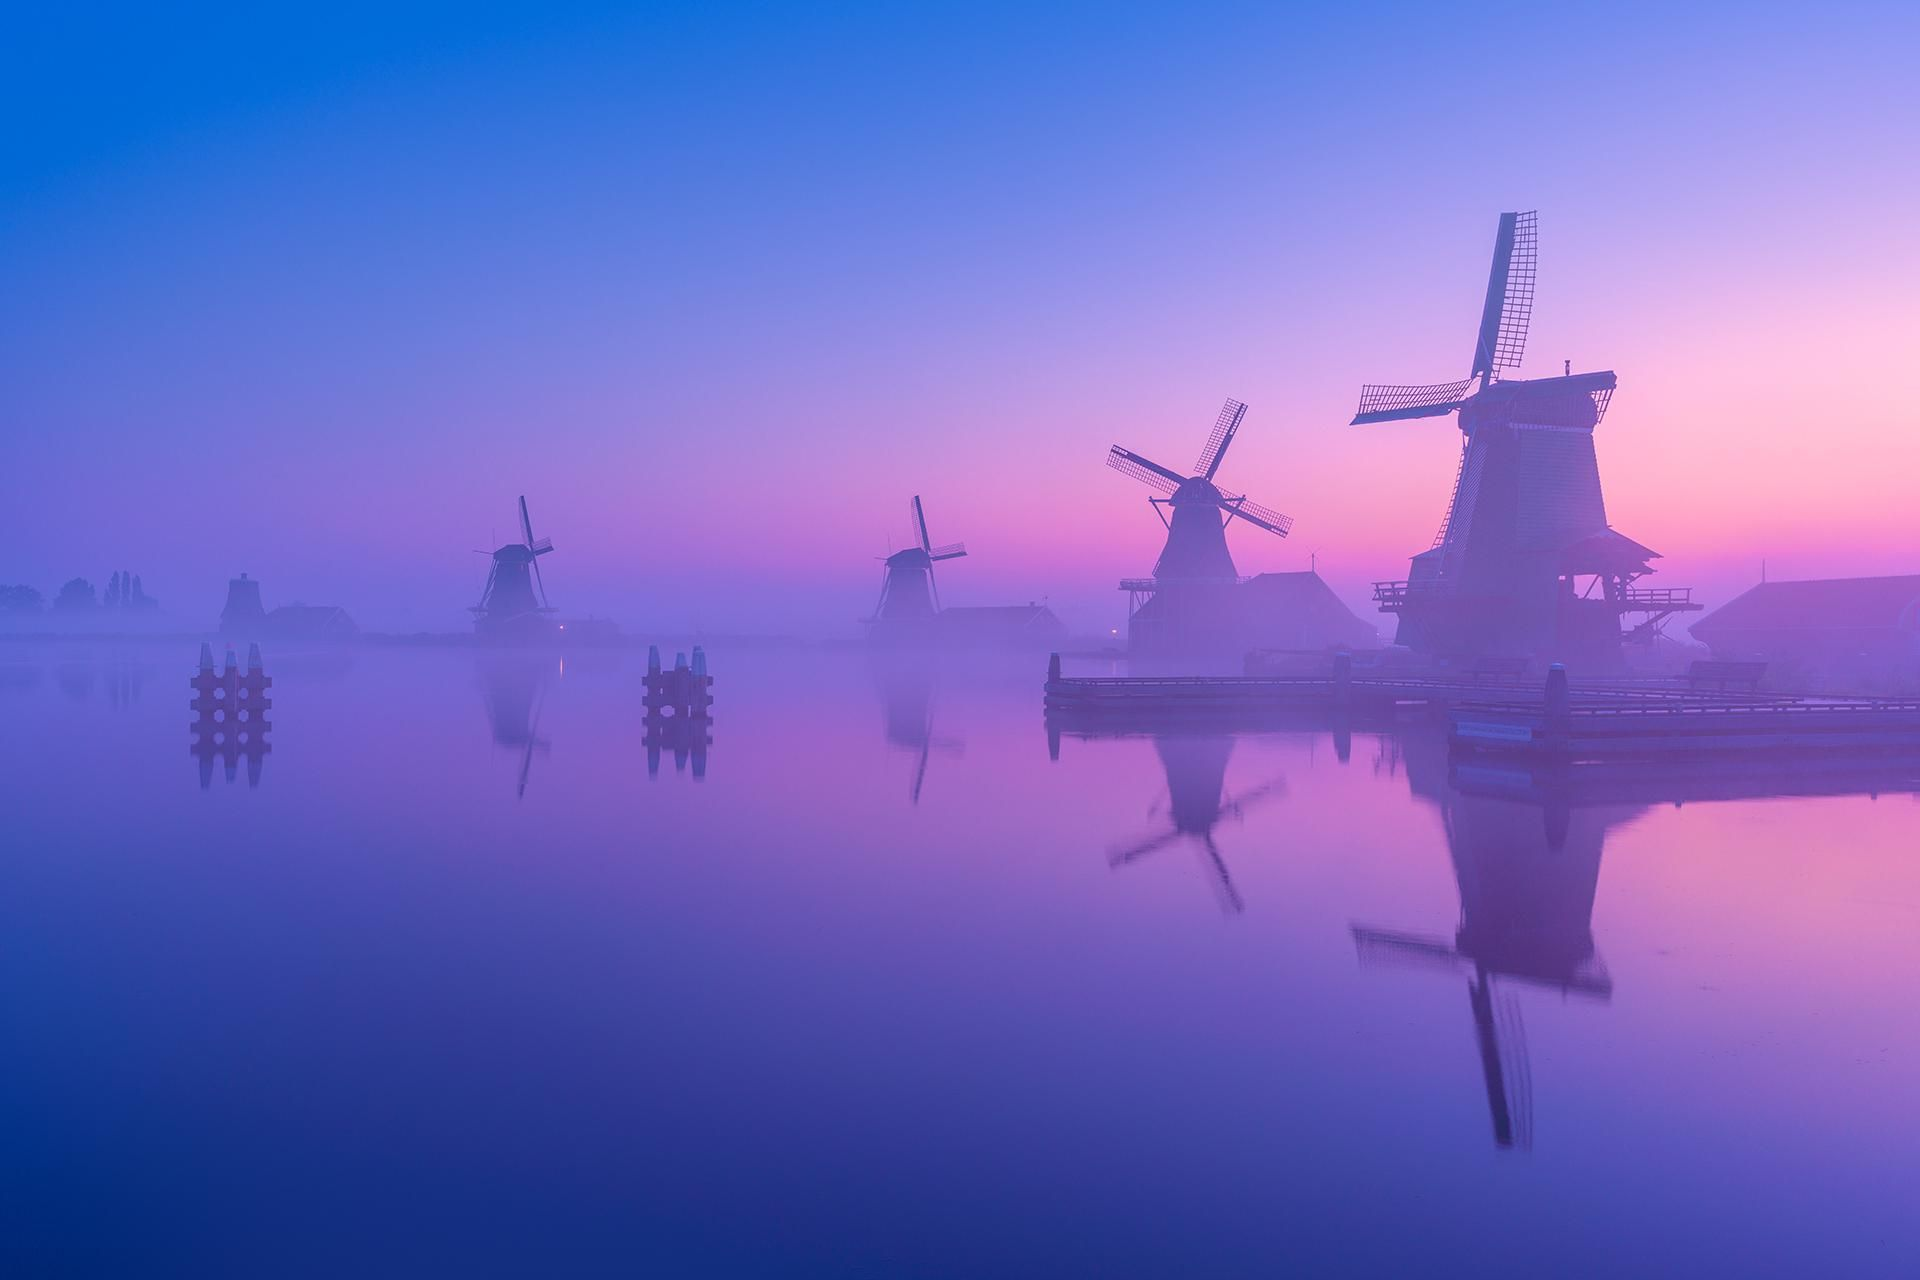 A Calm Morning In The Netherlands Mostbeautiful Landscape